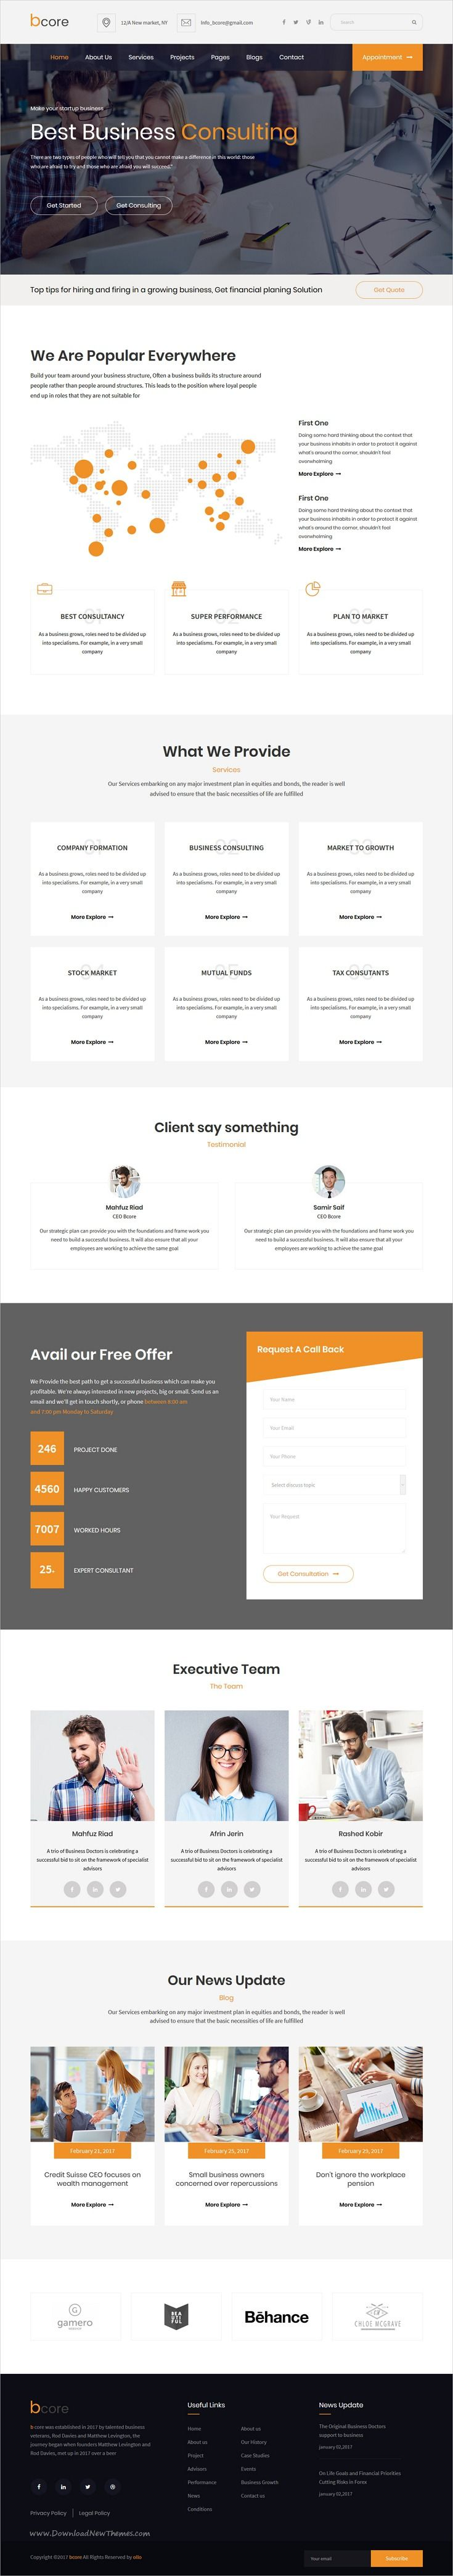 bcore is clean and modern design responsive #HTML template for business #consulting and #professional services website download now..